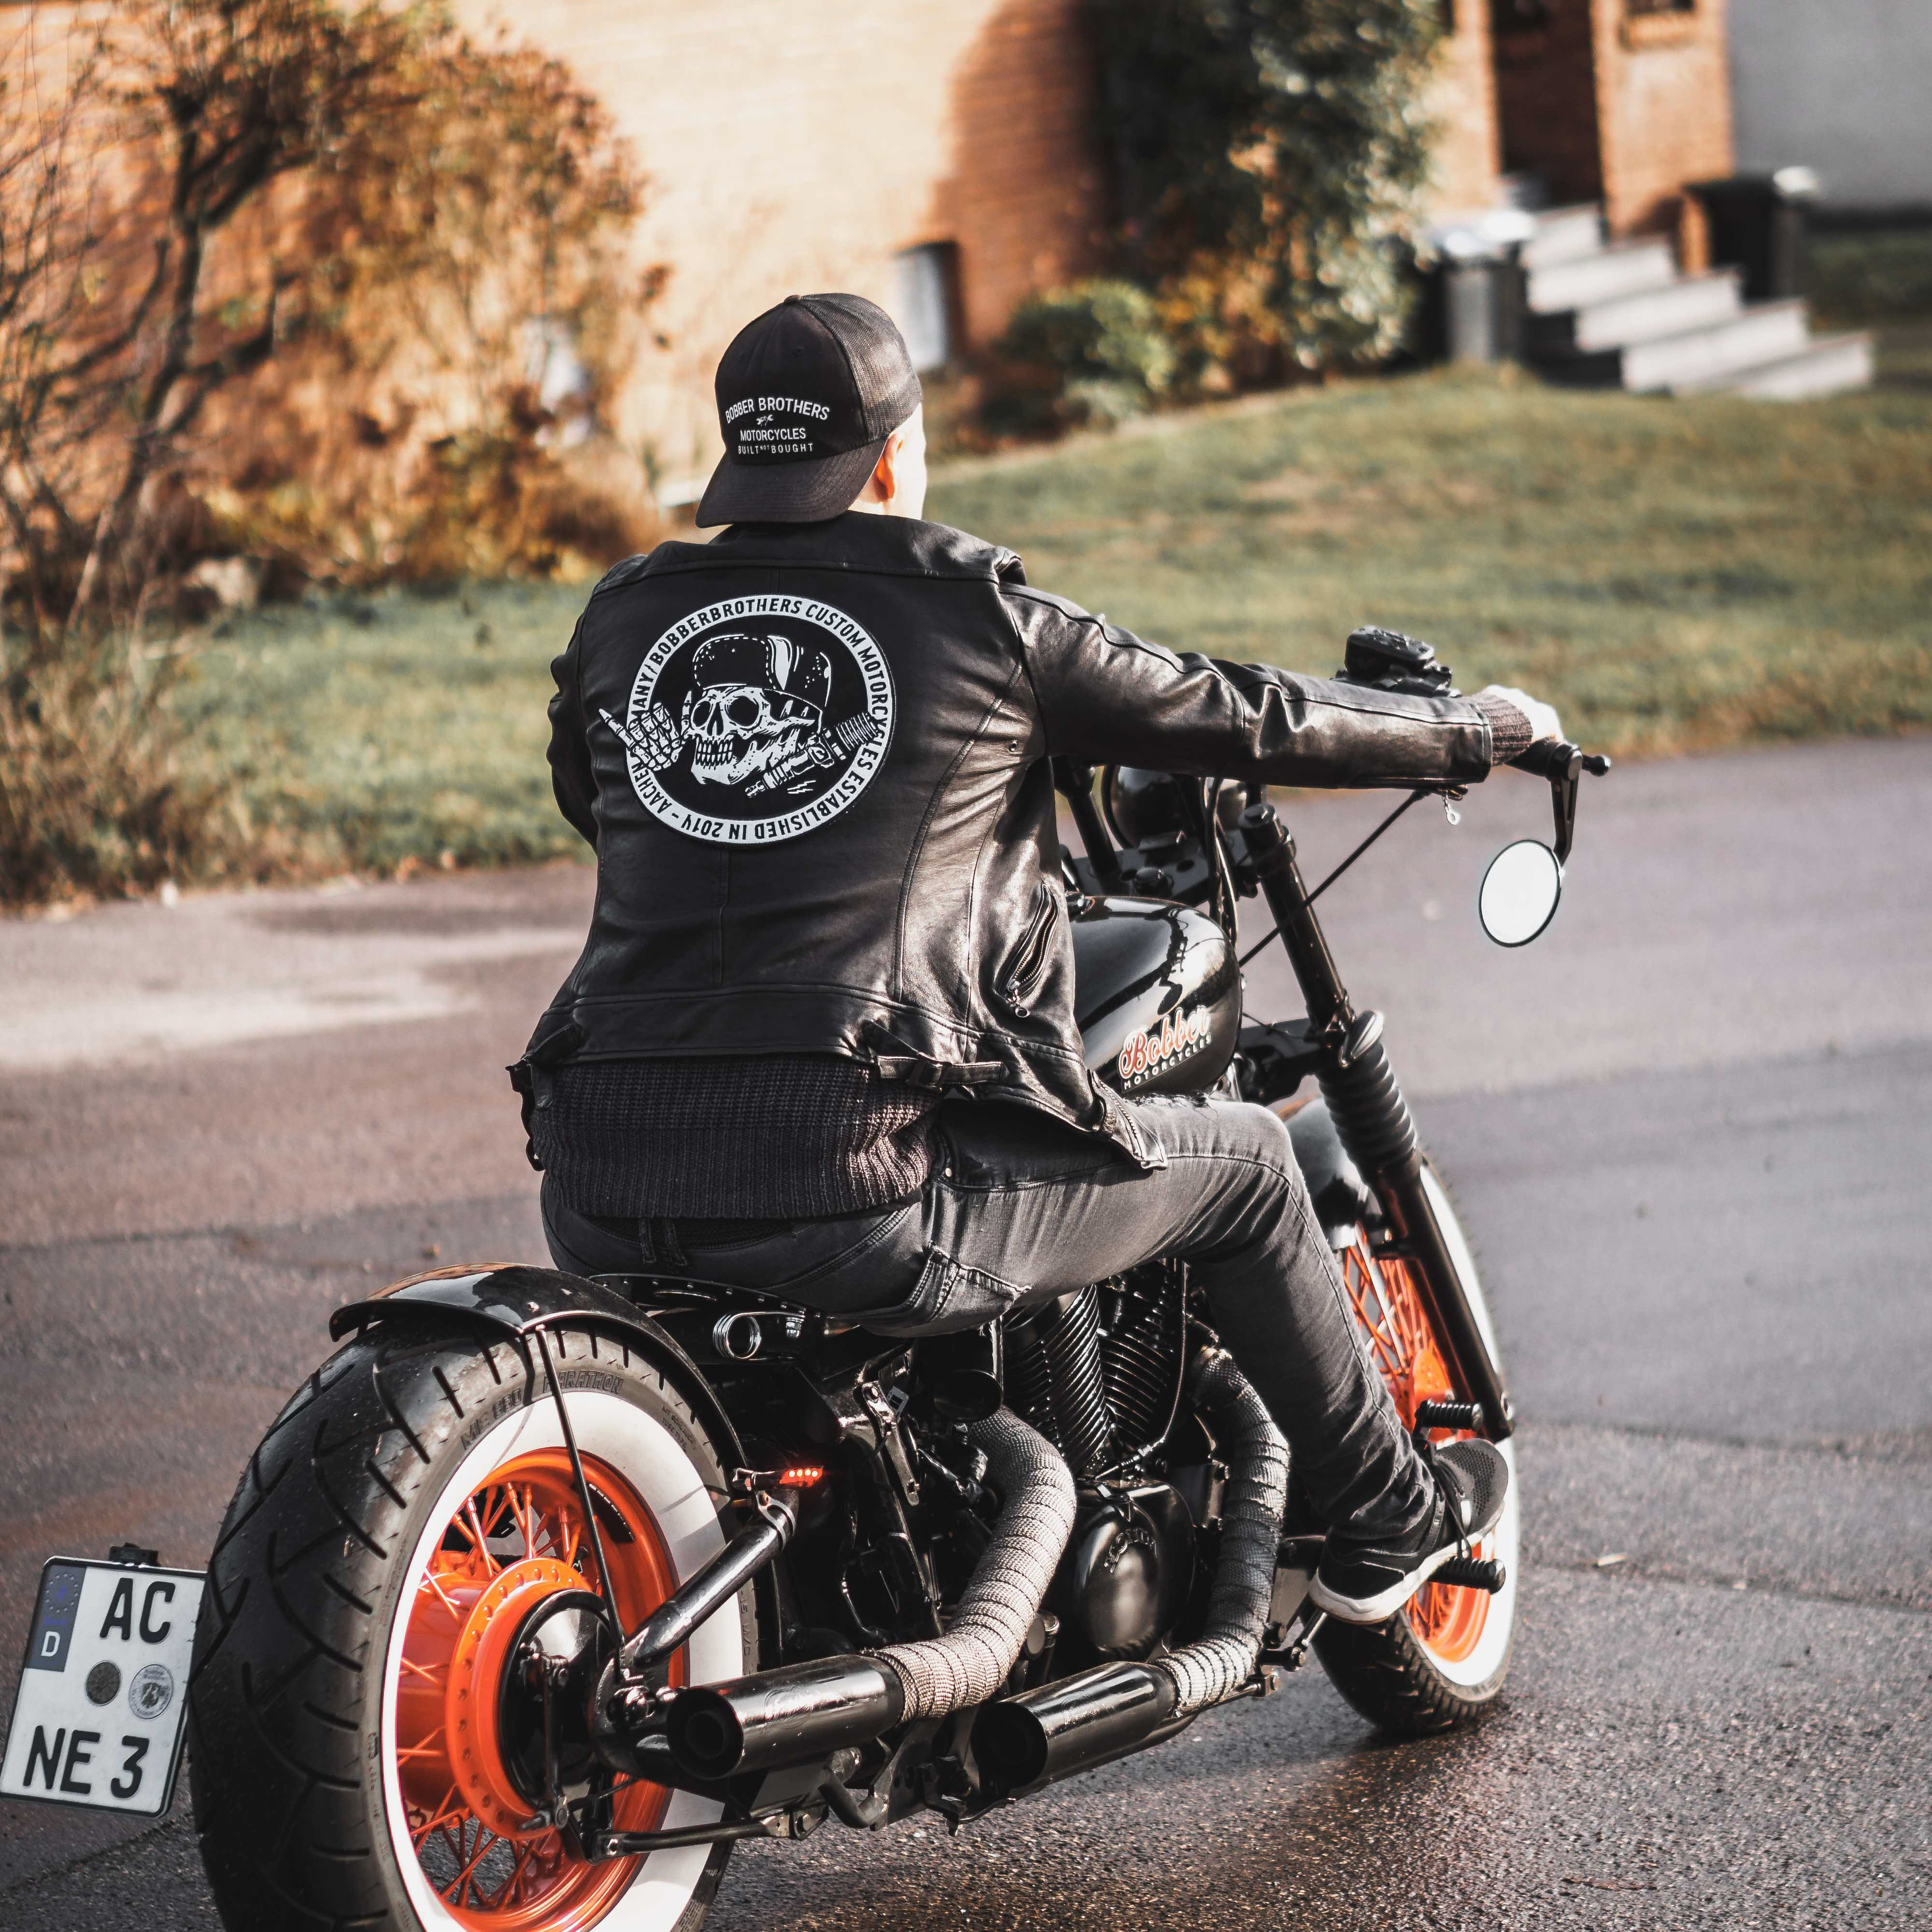 Check Our Store Bobberbrothers Com Bobberbrothers Bobber Motorcycle Gear Shirt Motorcycle T Shirts Motorcycle Outfit Motorcycle Motorcycle Tshirts